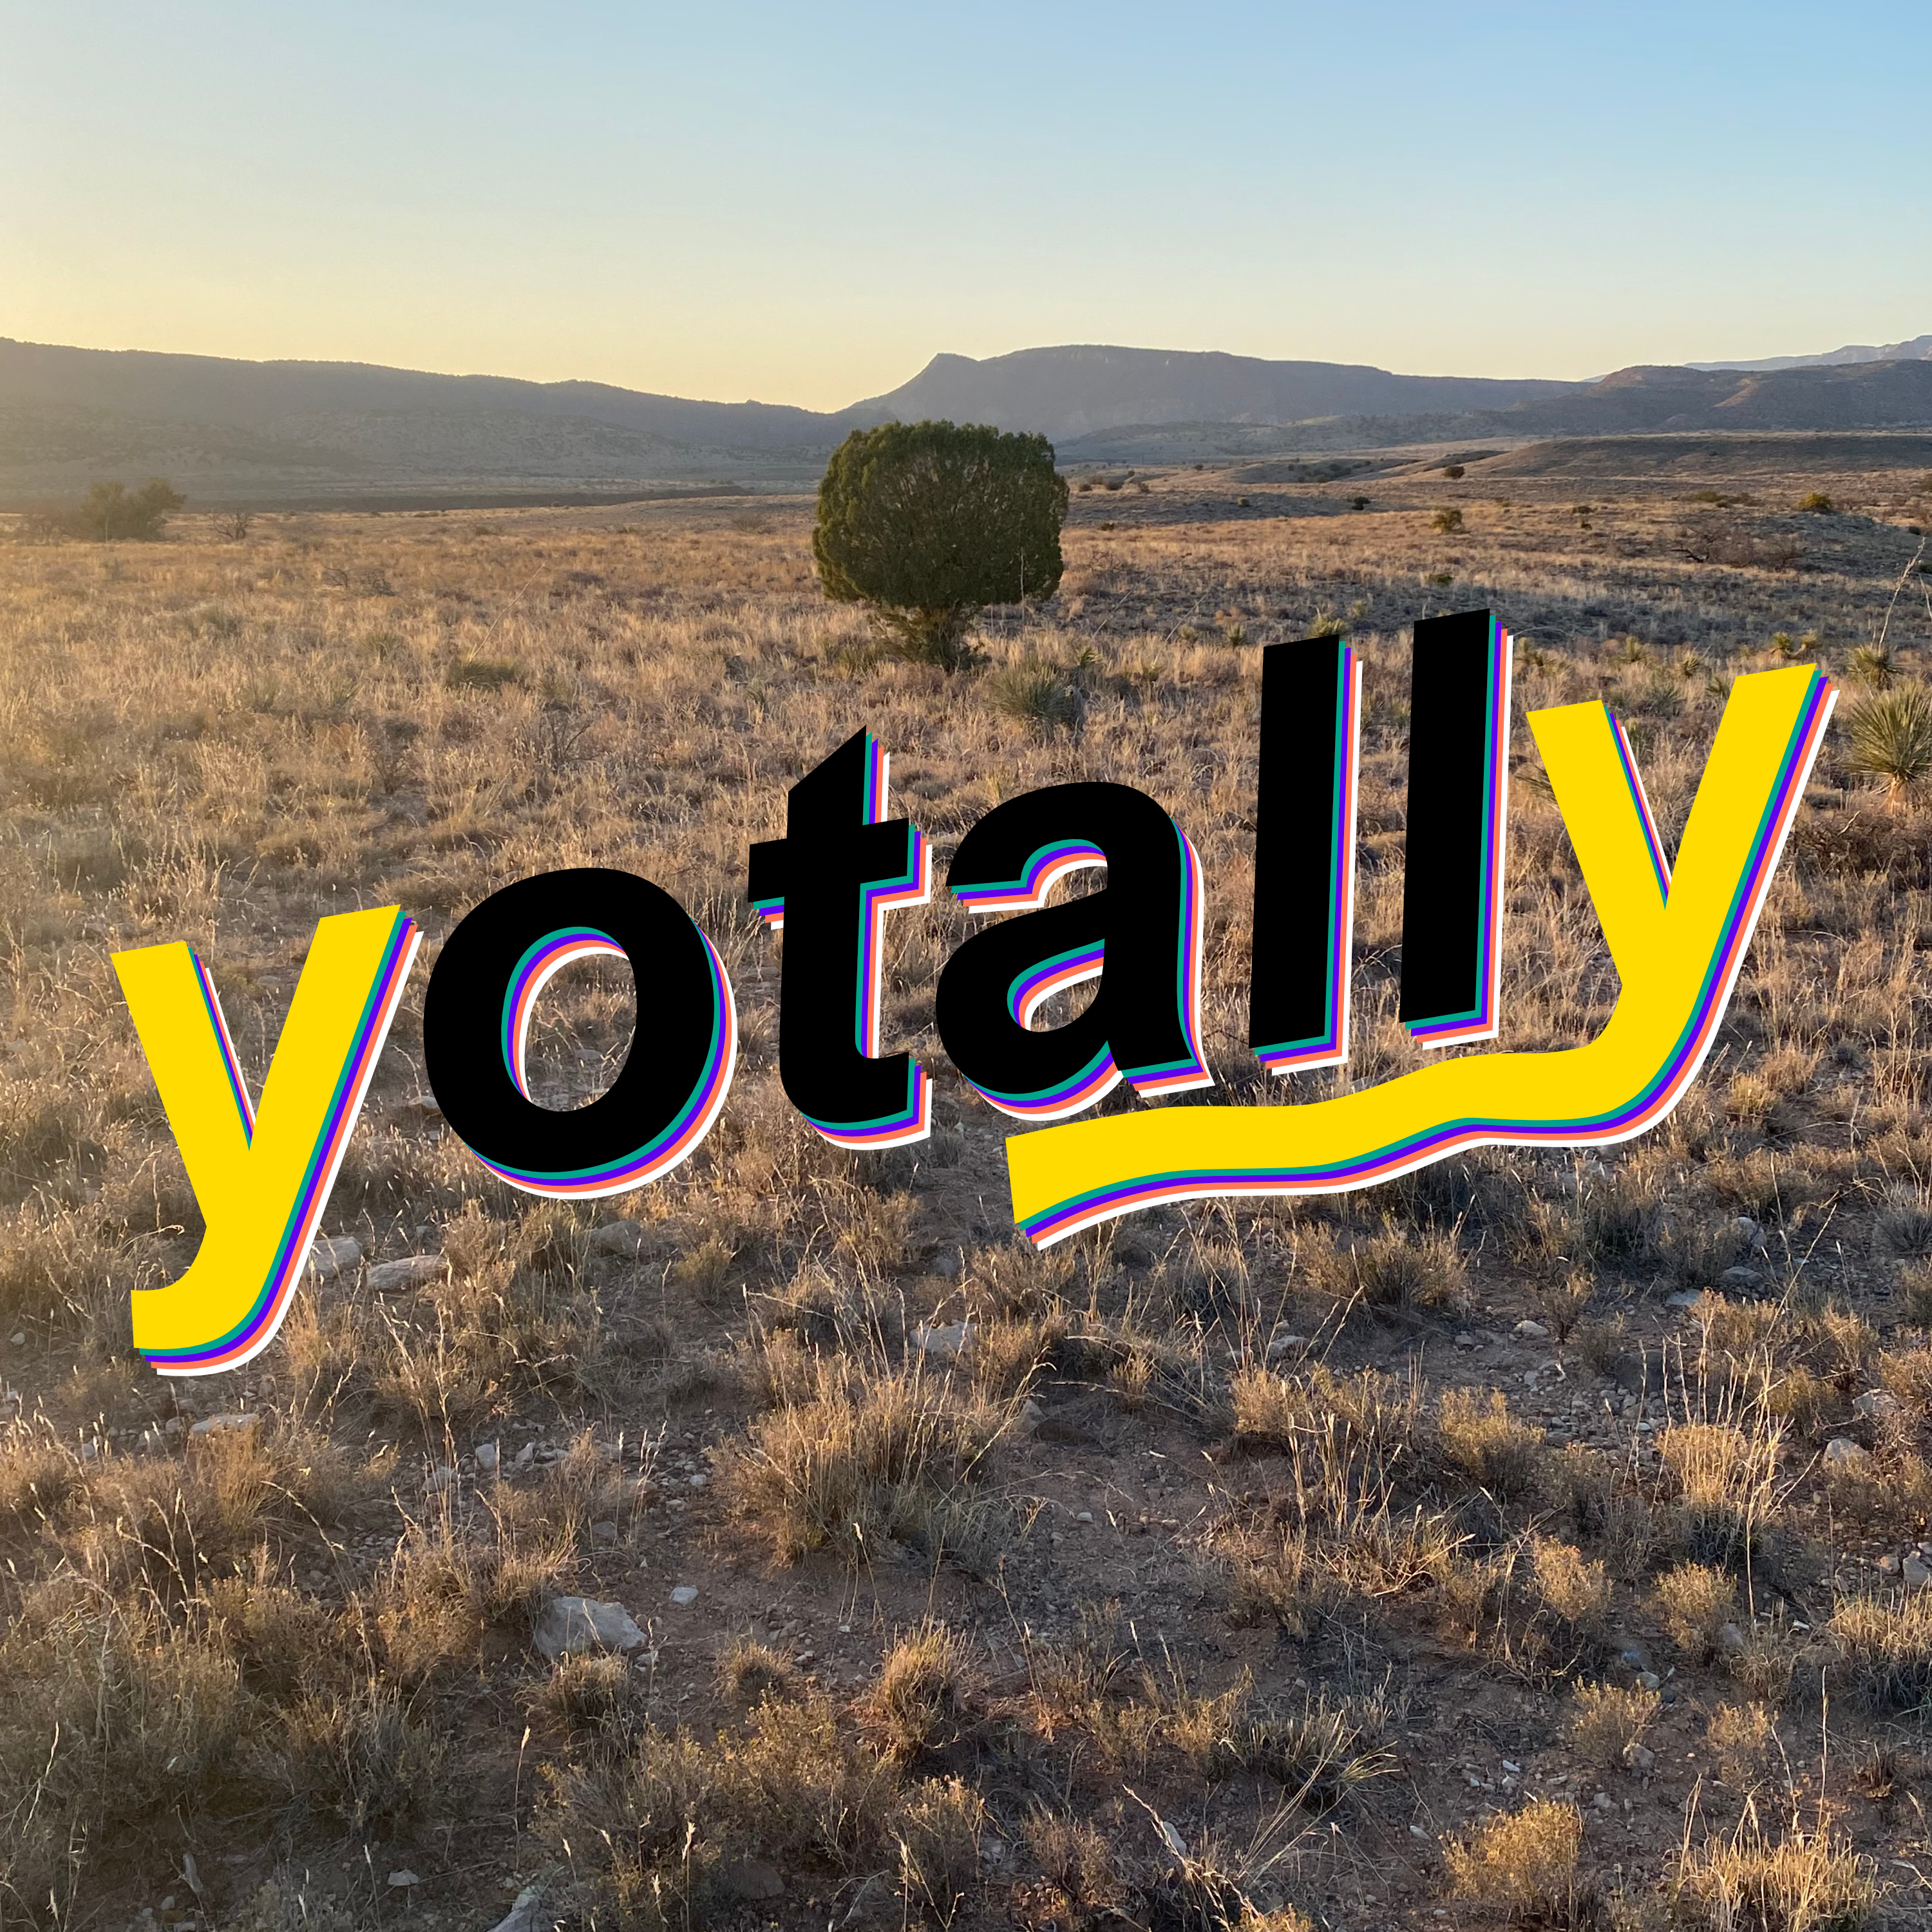 it's a tree with the word yotally under it, nice gold field